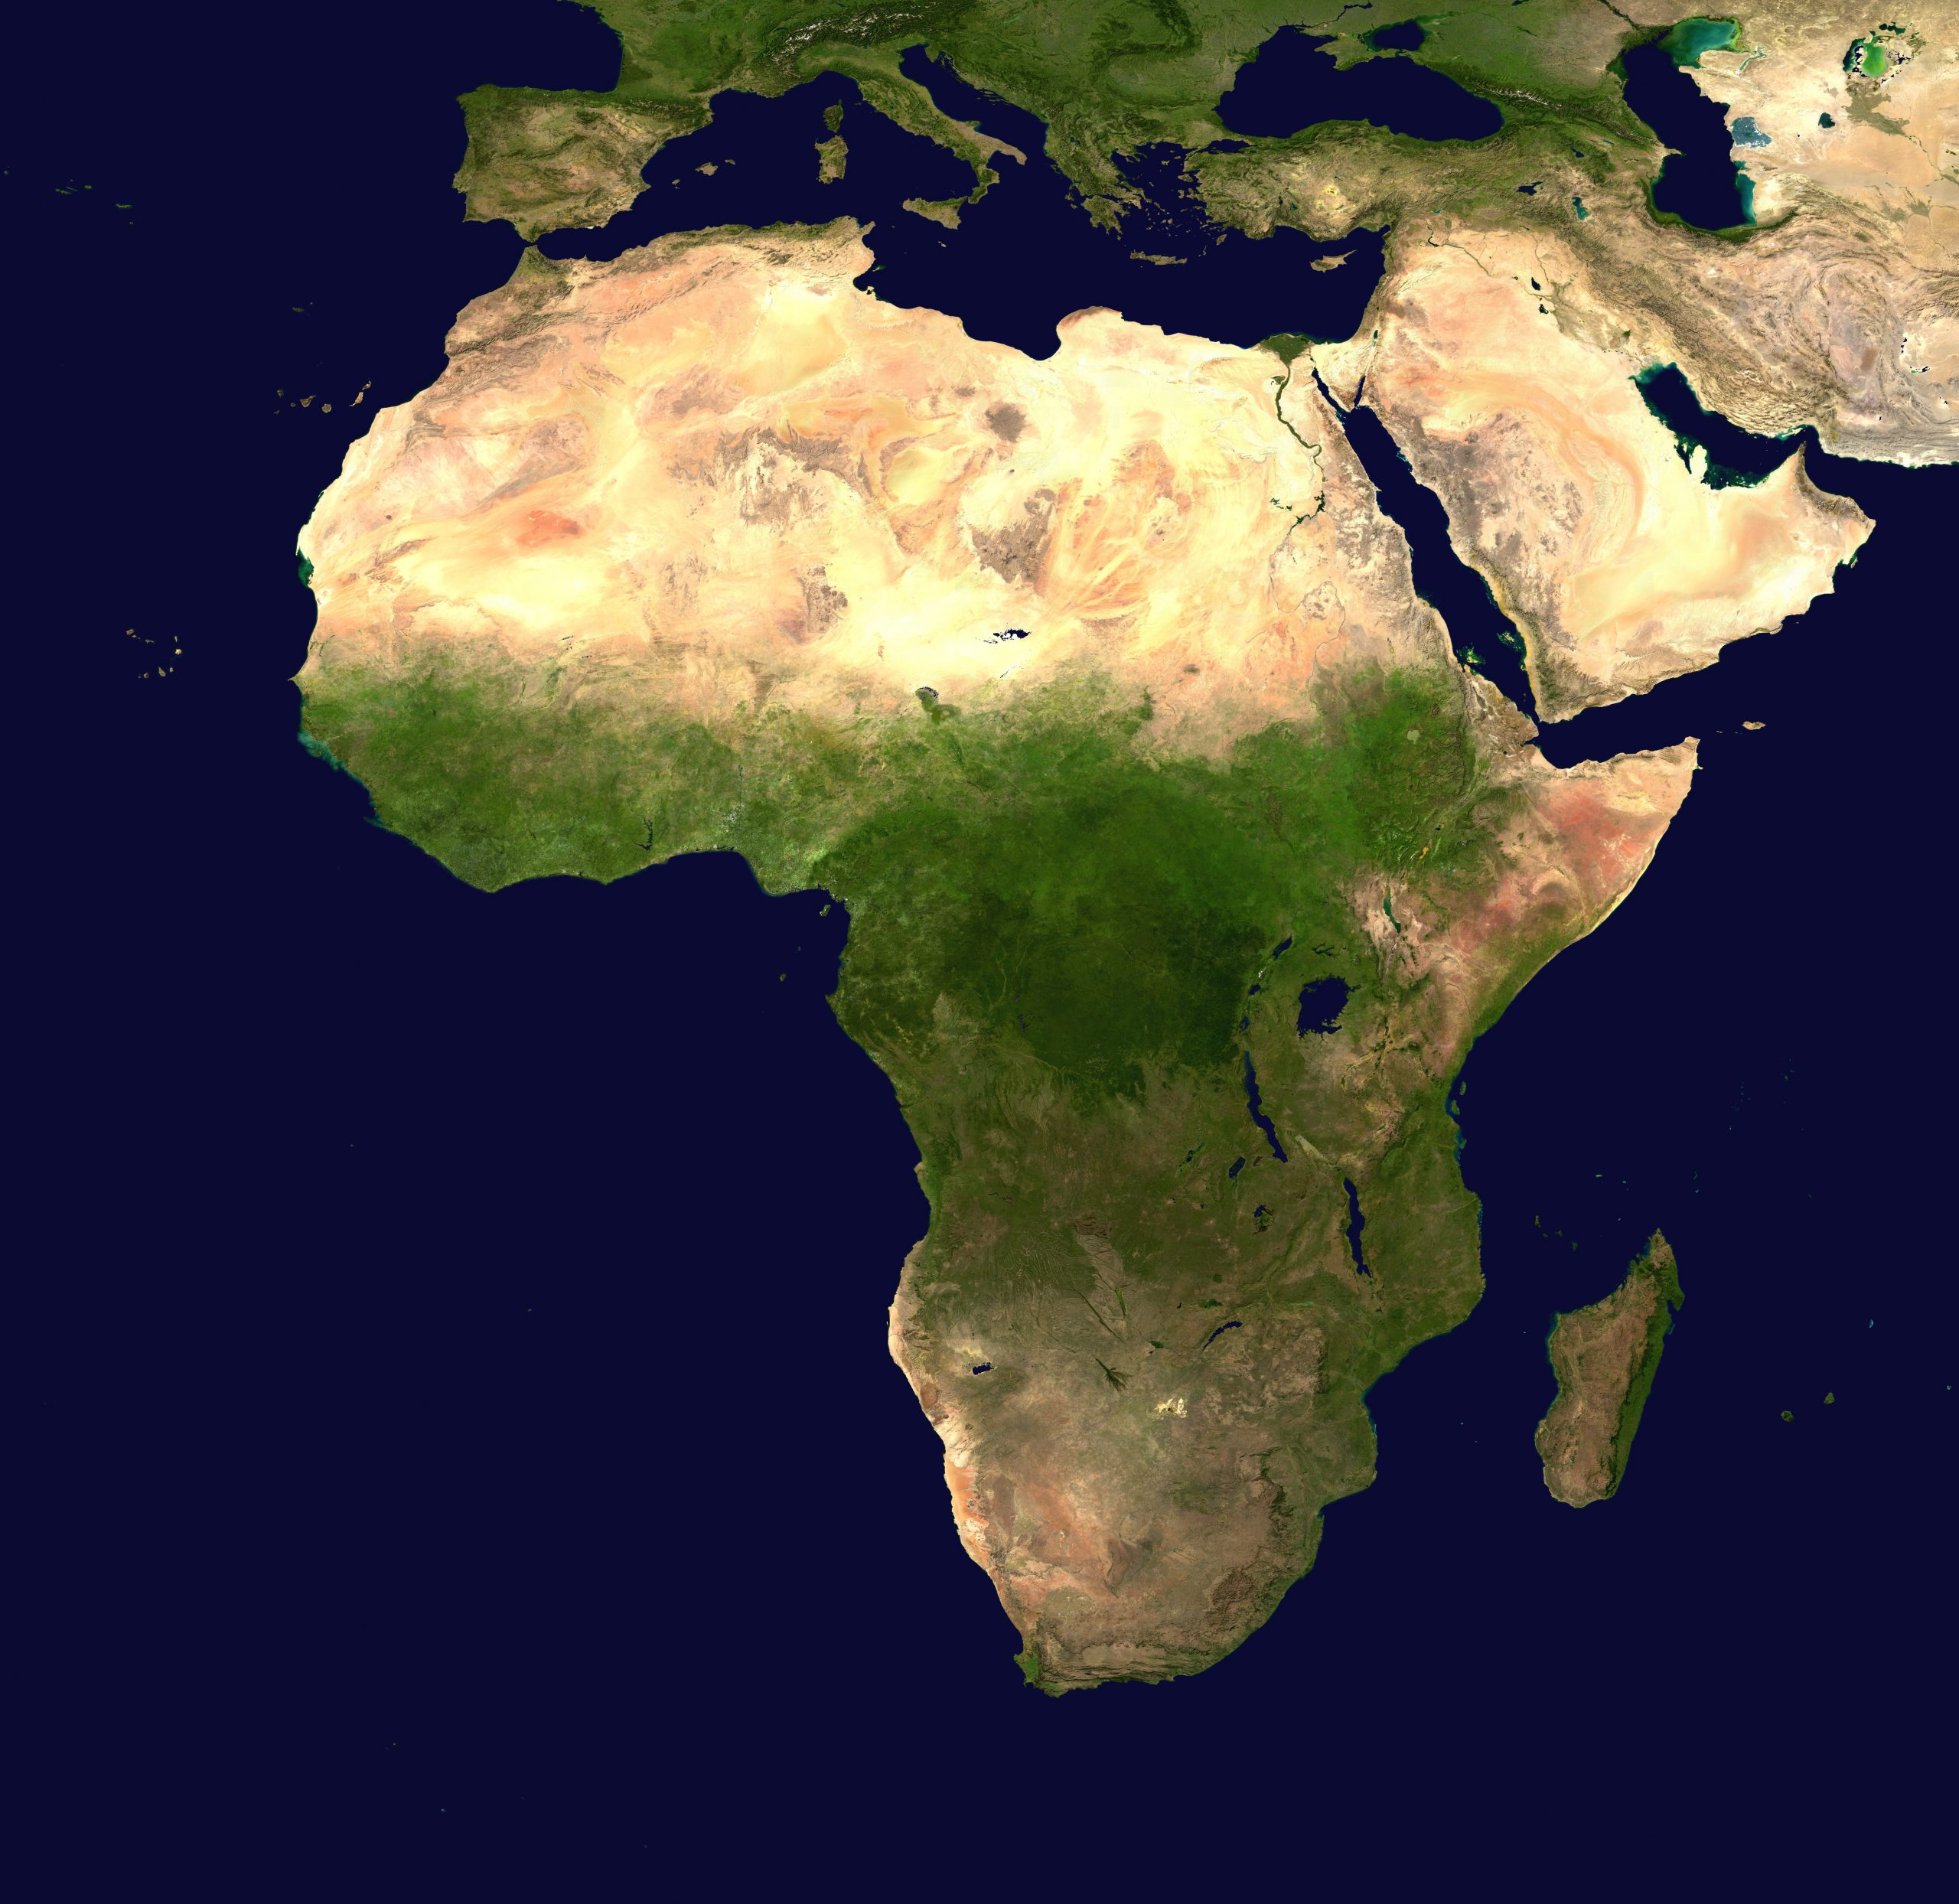 More than a million tons of fruit and vegetables are exported by the EU to Africa